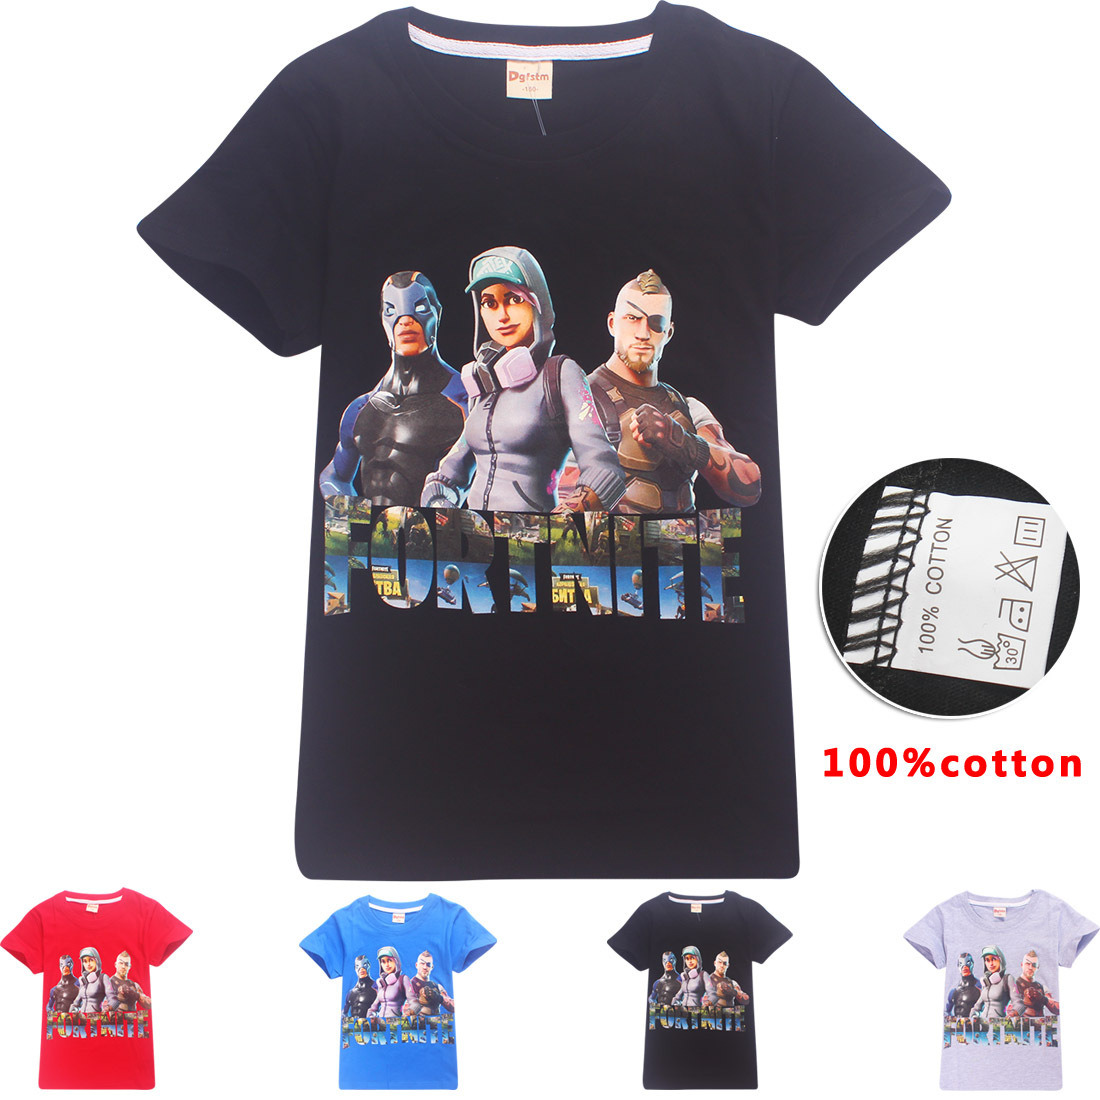 Fortnite Battle Royale Legend Gaming Pattern T-shirts for teens boys tops 2018 Roblox girls kids t shirts clothes 10 11 12 year